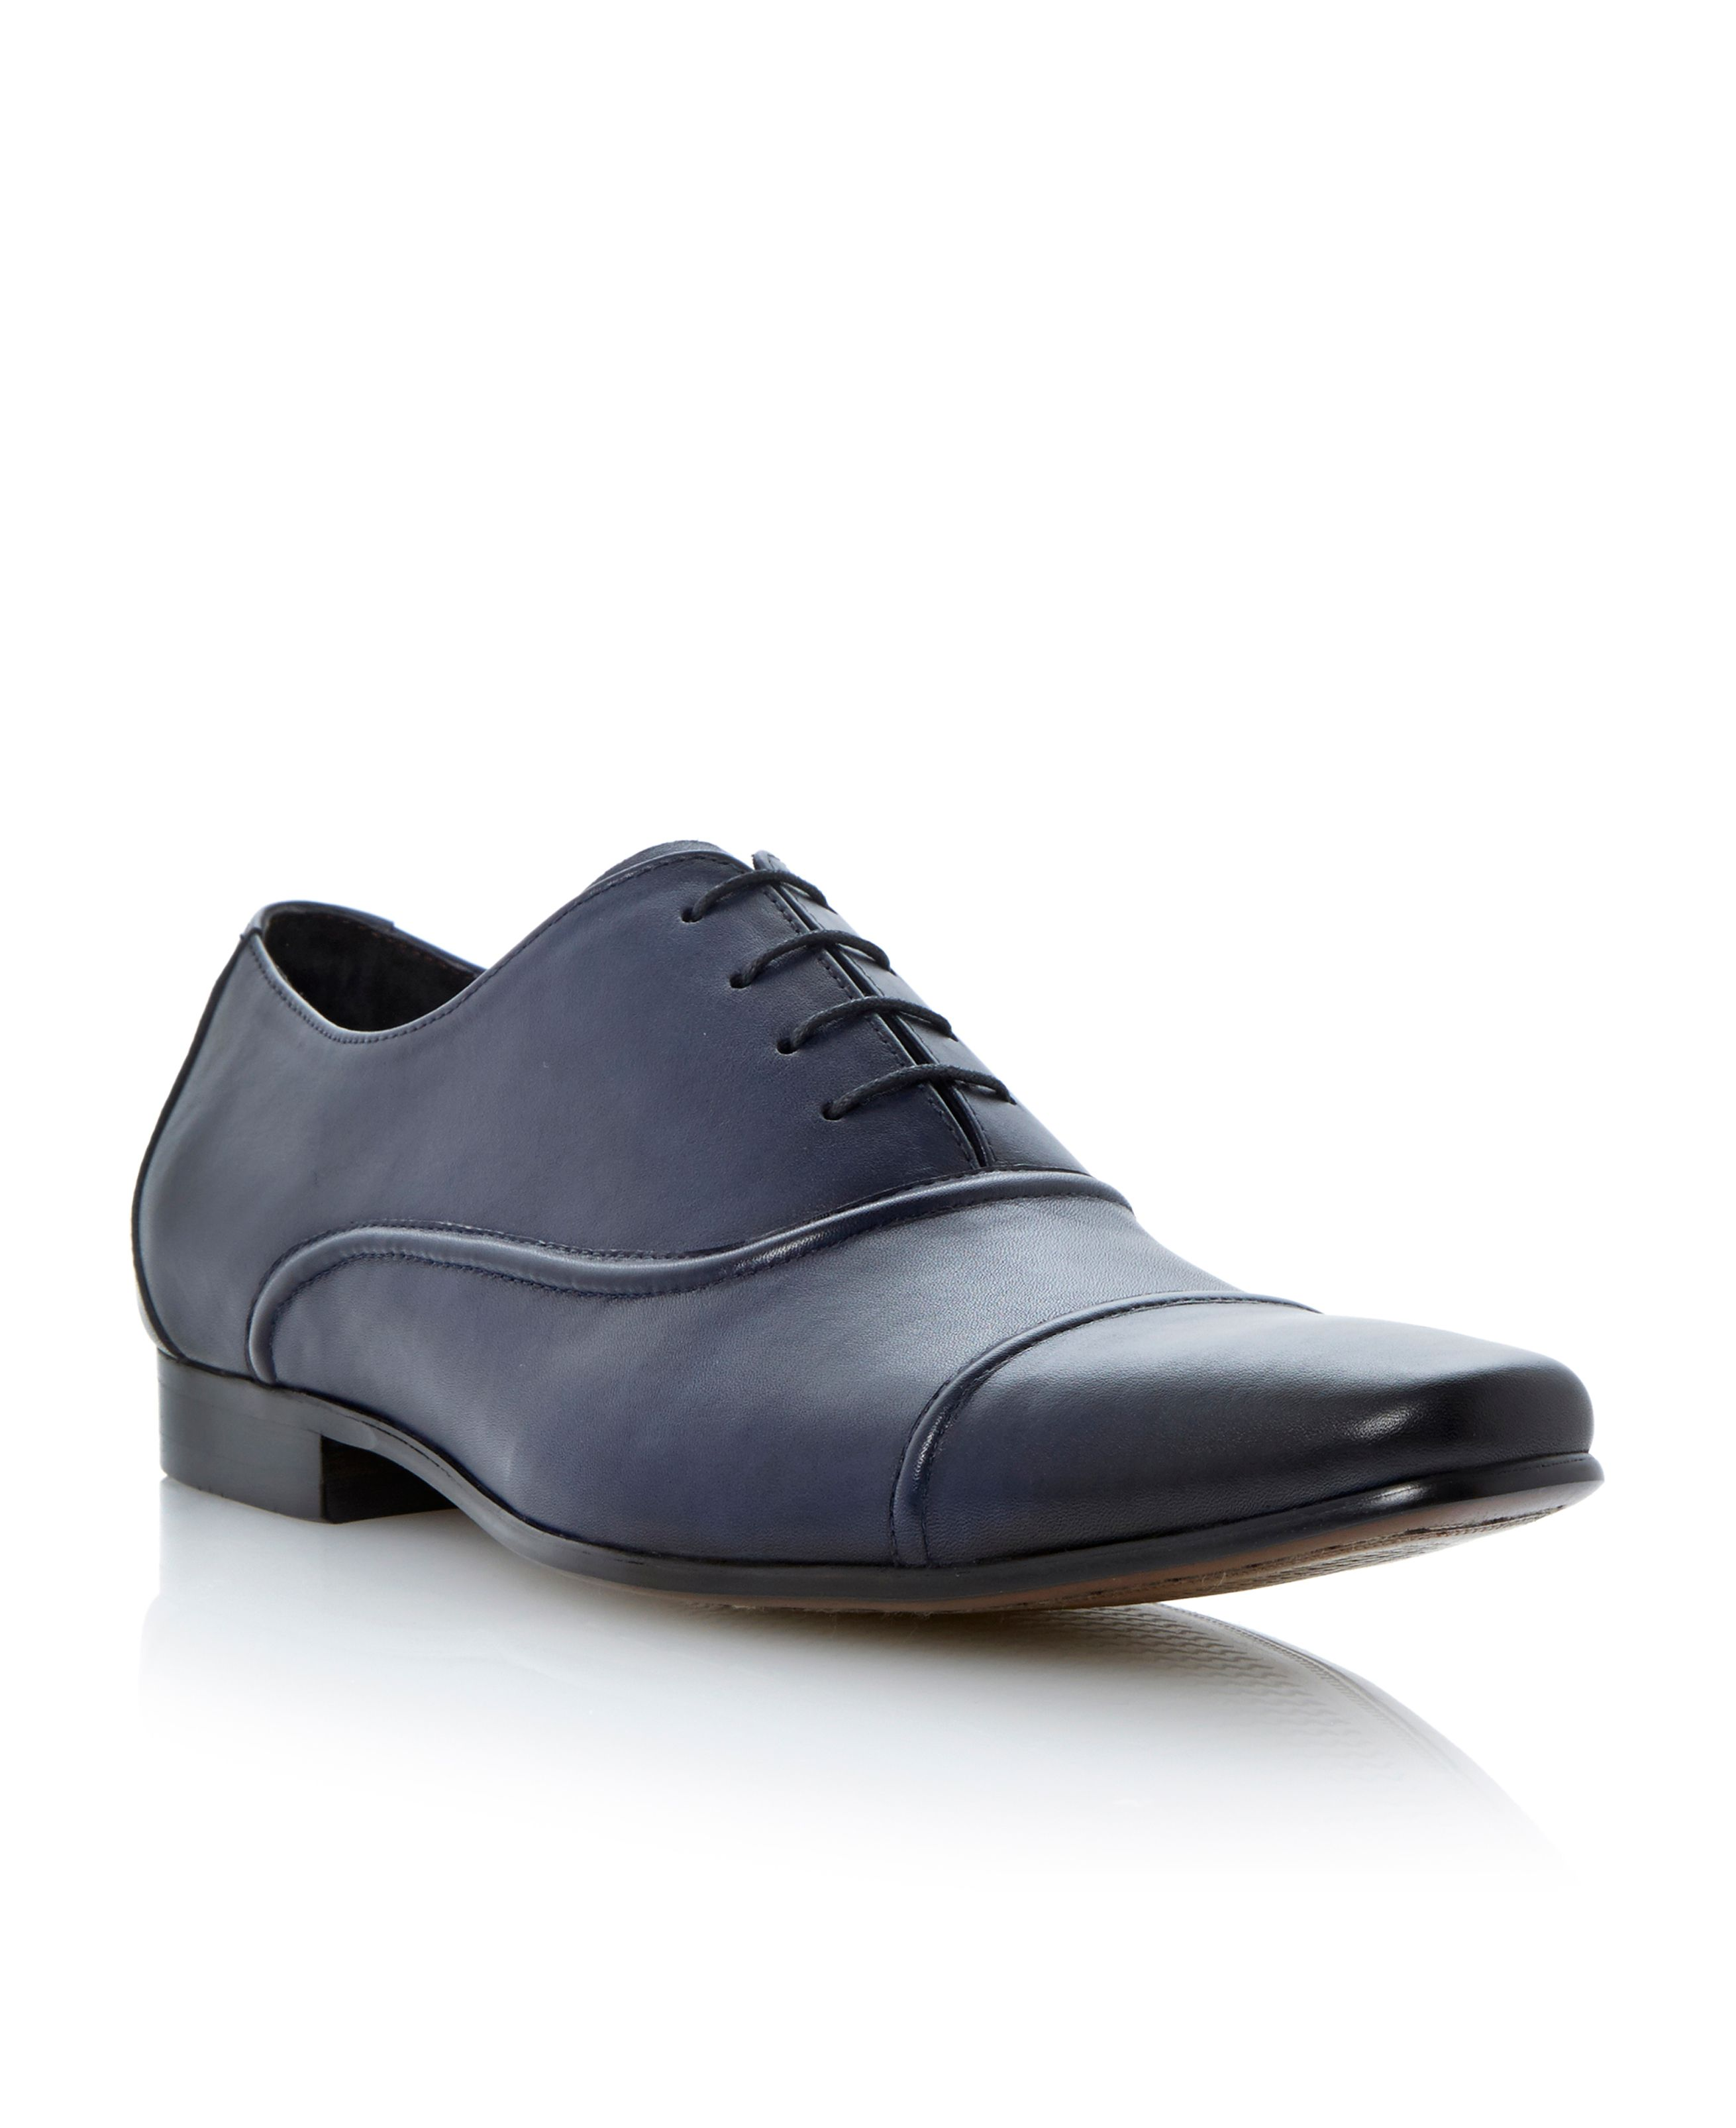 Academy lace up toecap seam oxford shoes